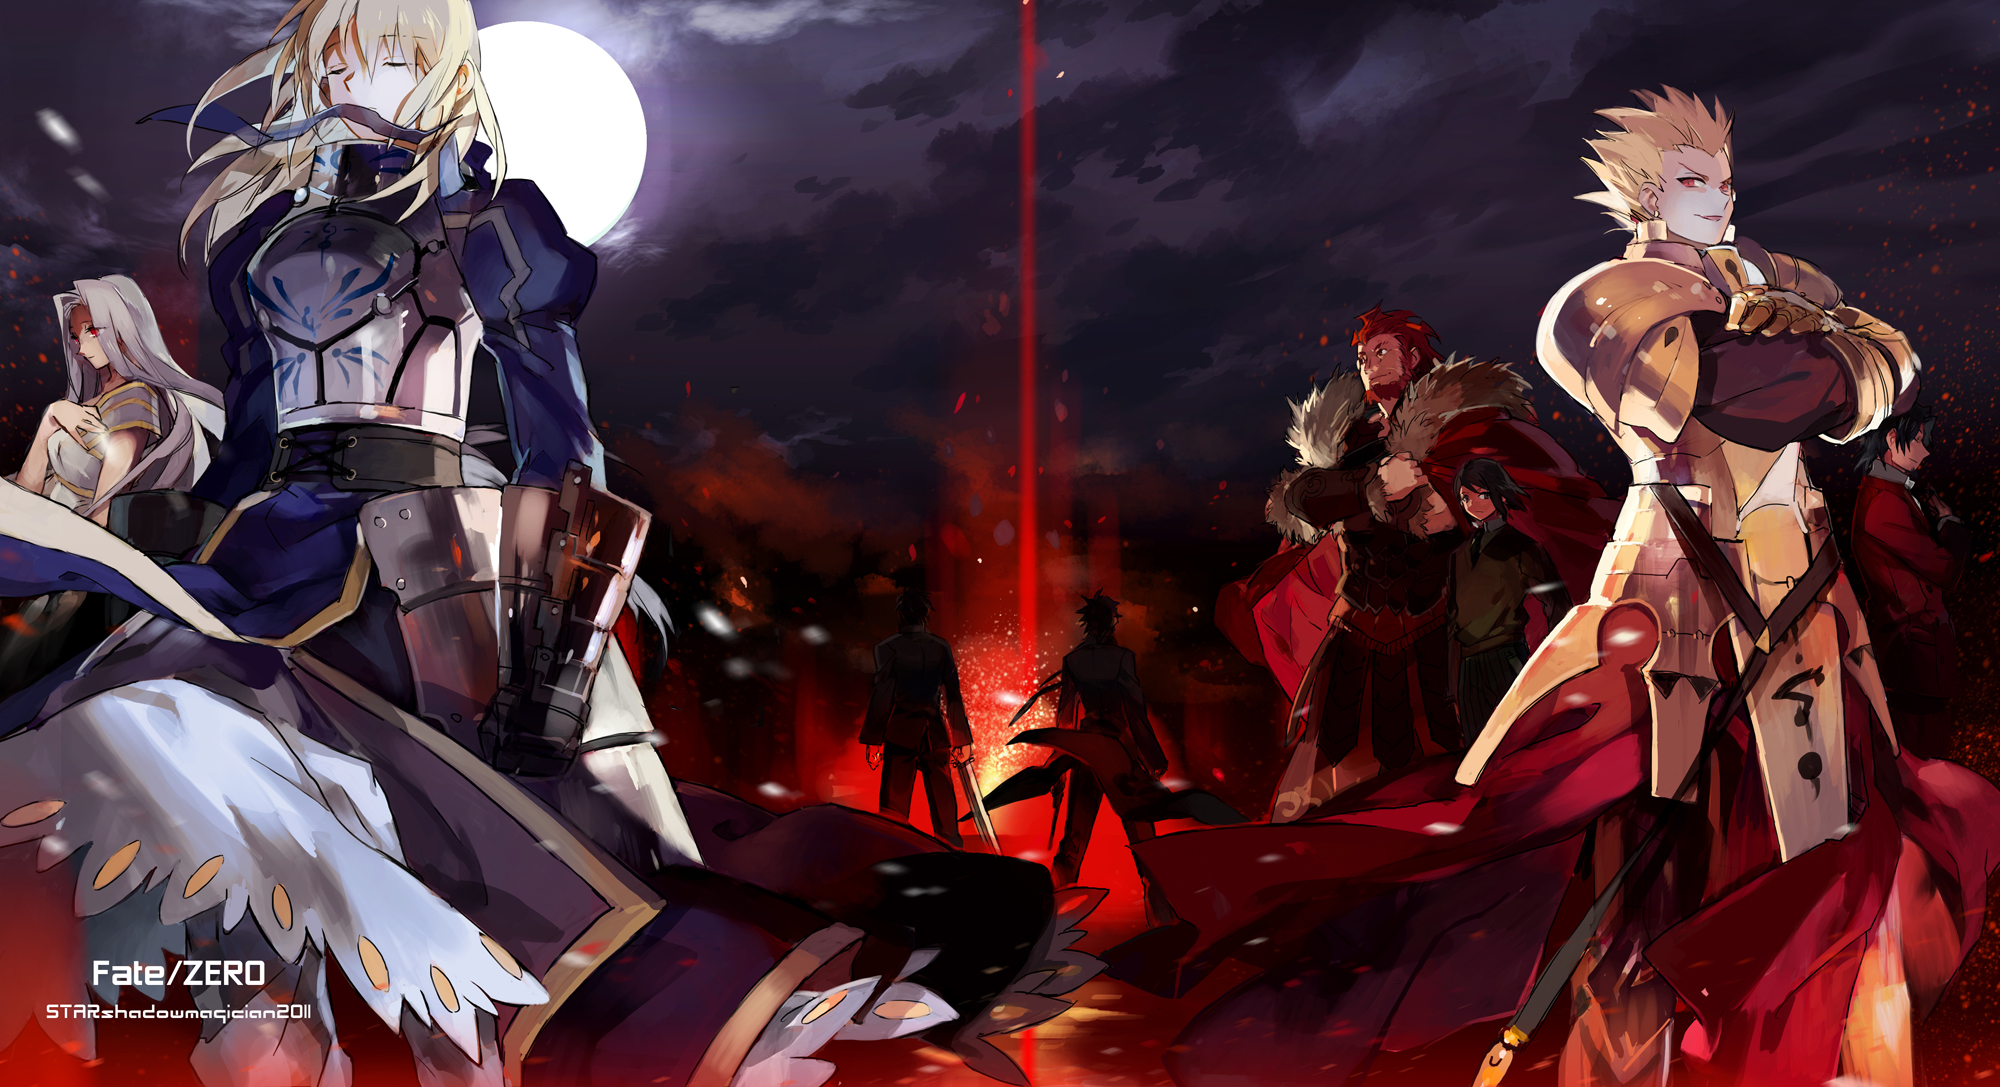 fate stay night wallpaper hd  Saber (Fate/stay night), Wallpaper - Zerochan Anime Image Board